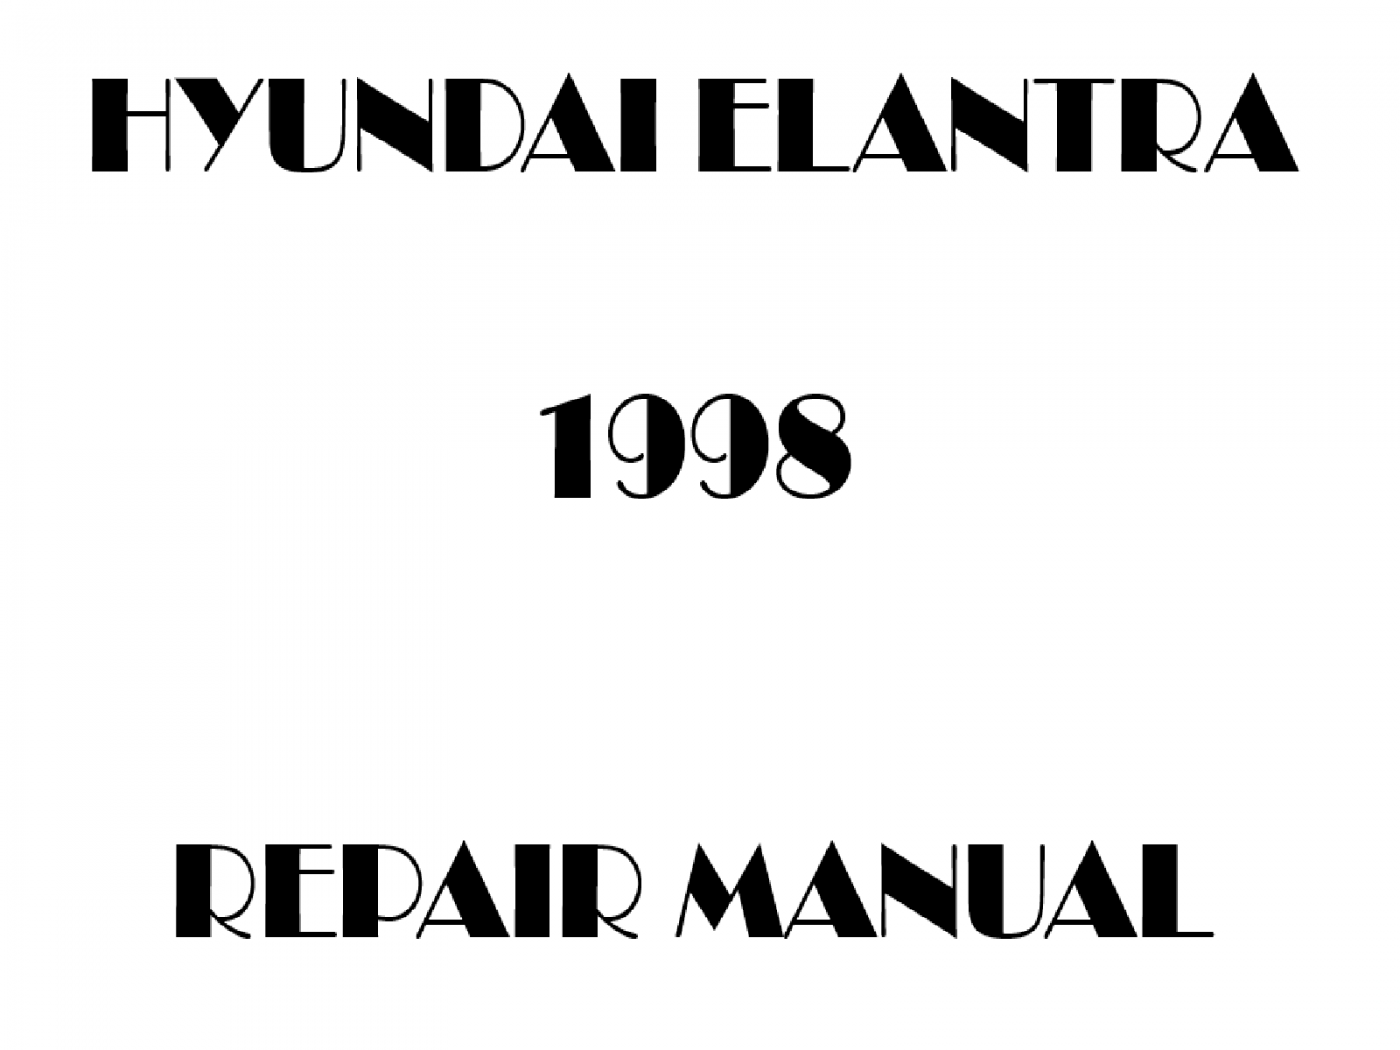 1998 Hyundai Elantra repair manual